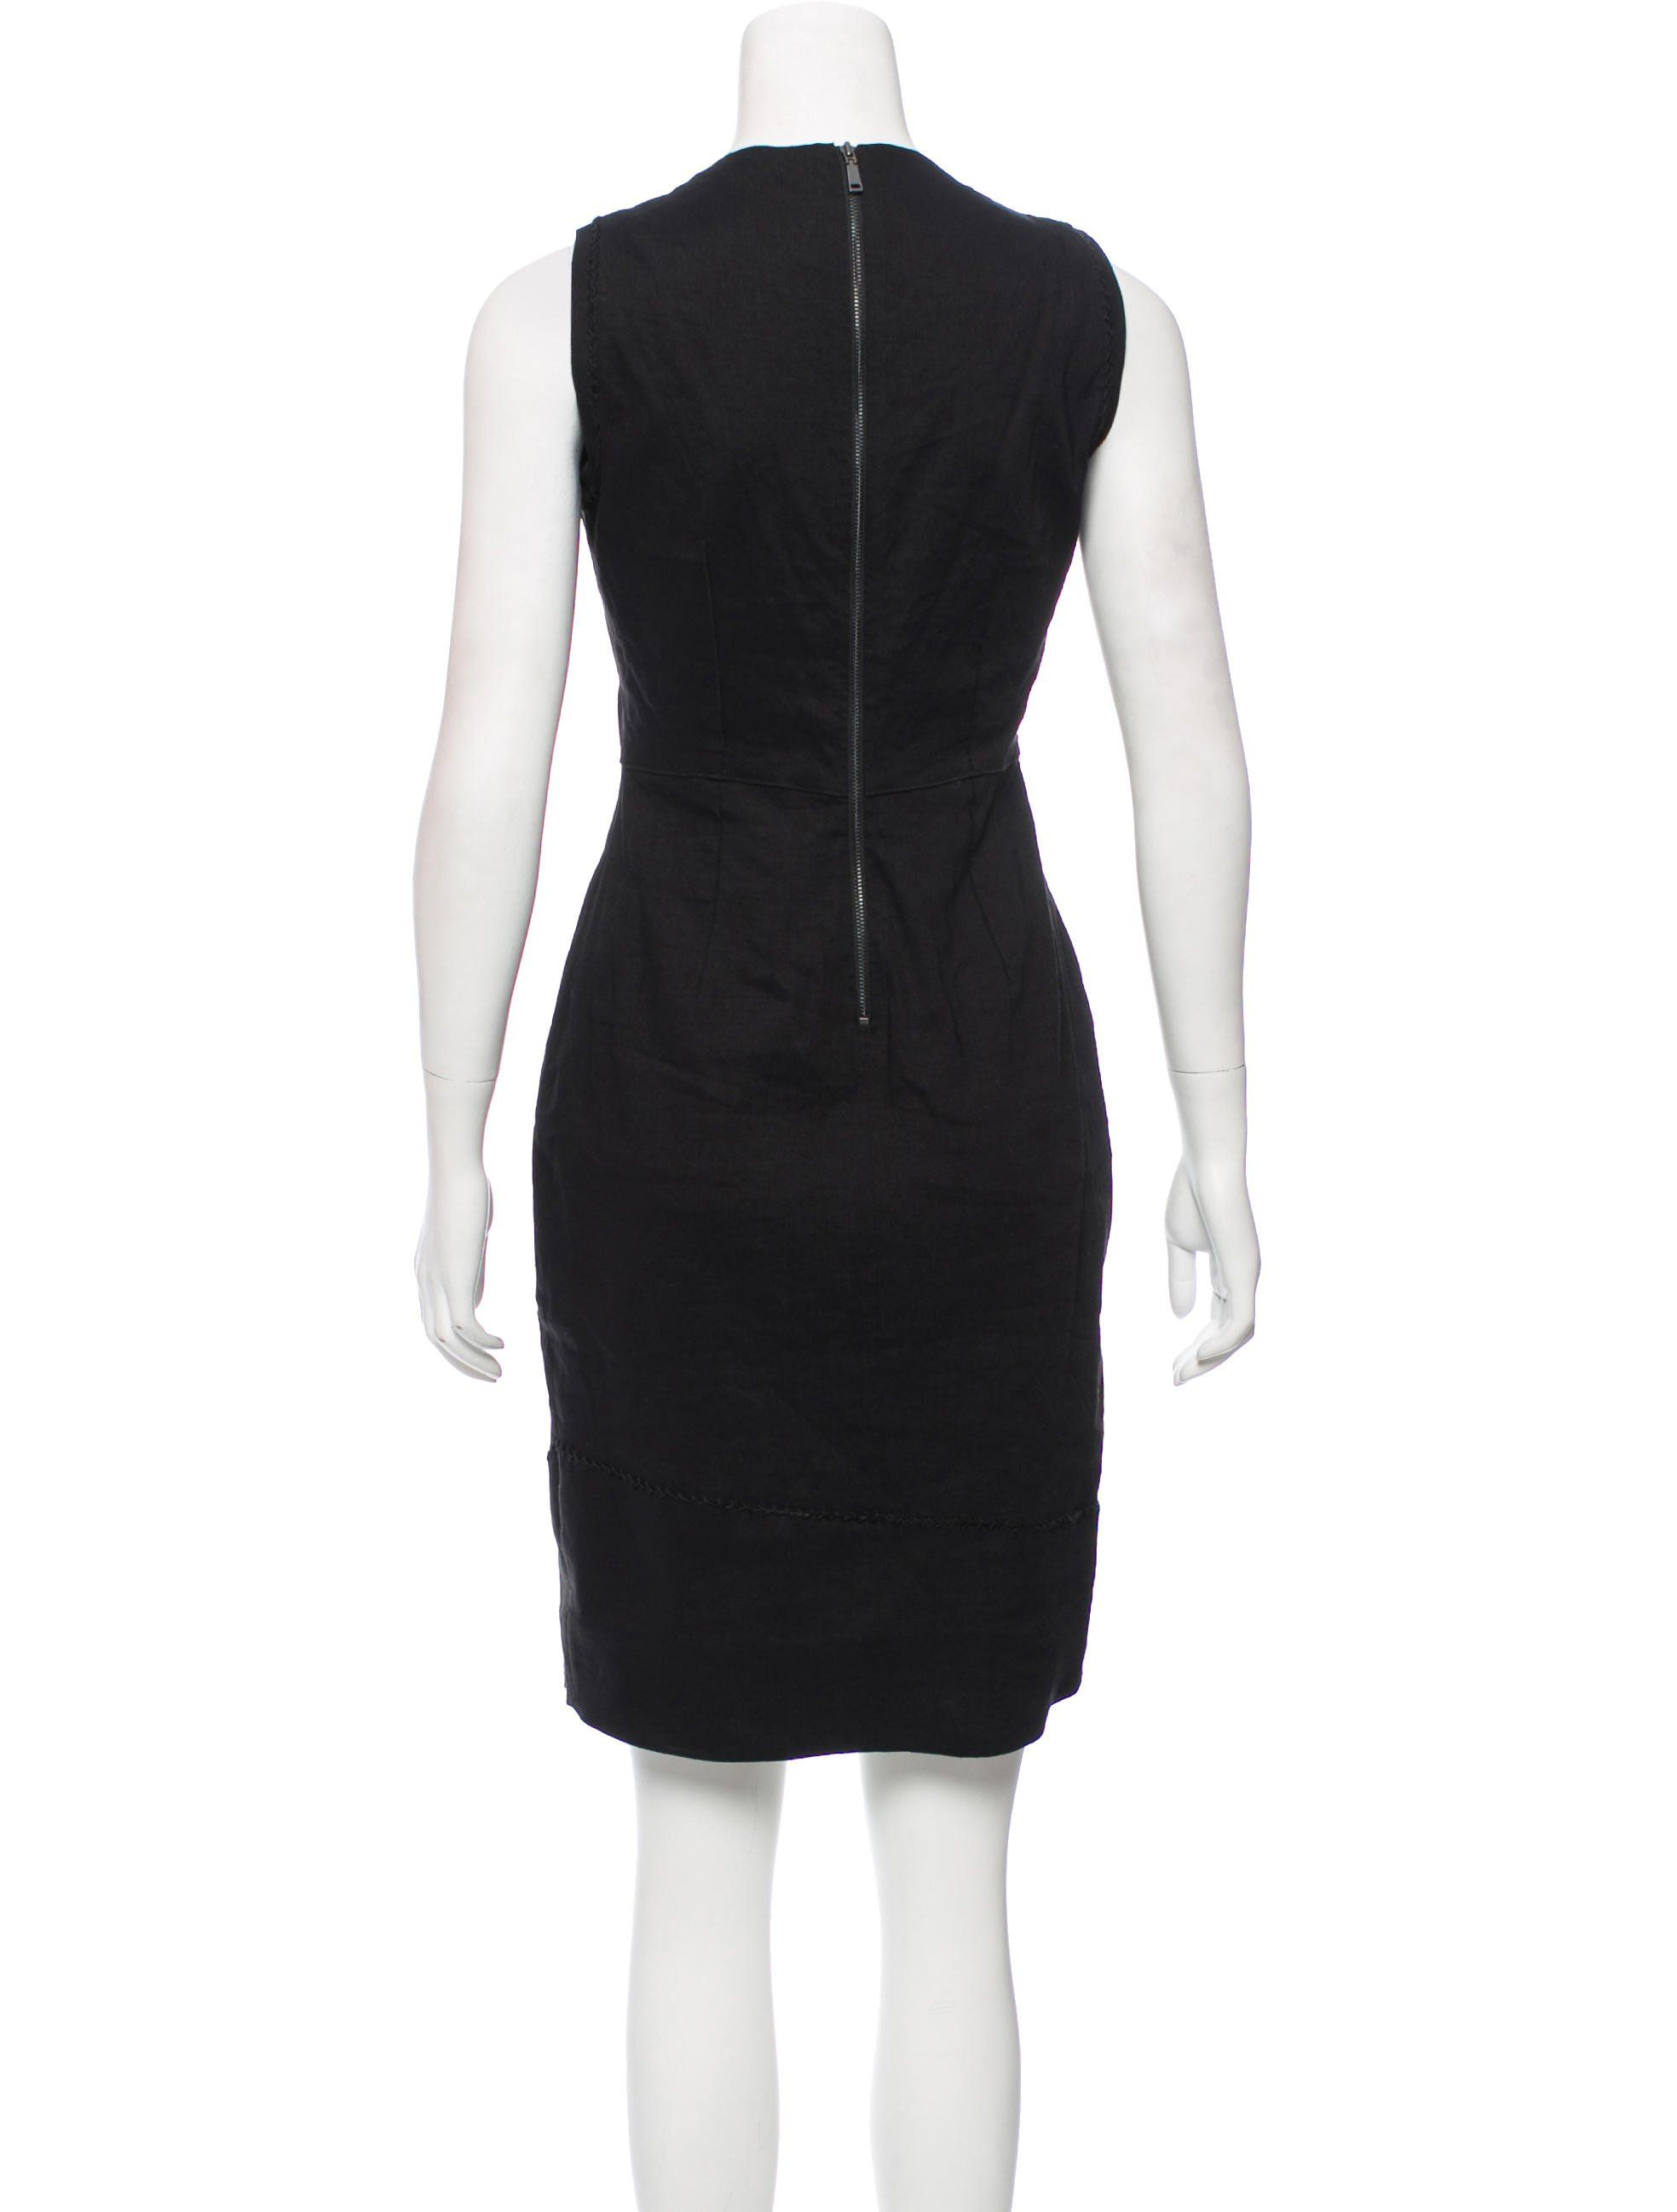 Black Elie Tahari Sleeveless Knee Length Dress With Scoop Neck Stitched Accents Throughout And Exposed Zi Metallic Knit Dress Sleeveless Mini Dress Mini Dress [ 2596 x 1968 Pixel ]